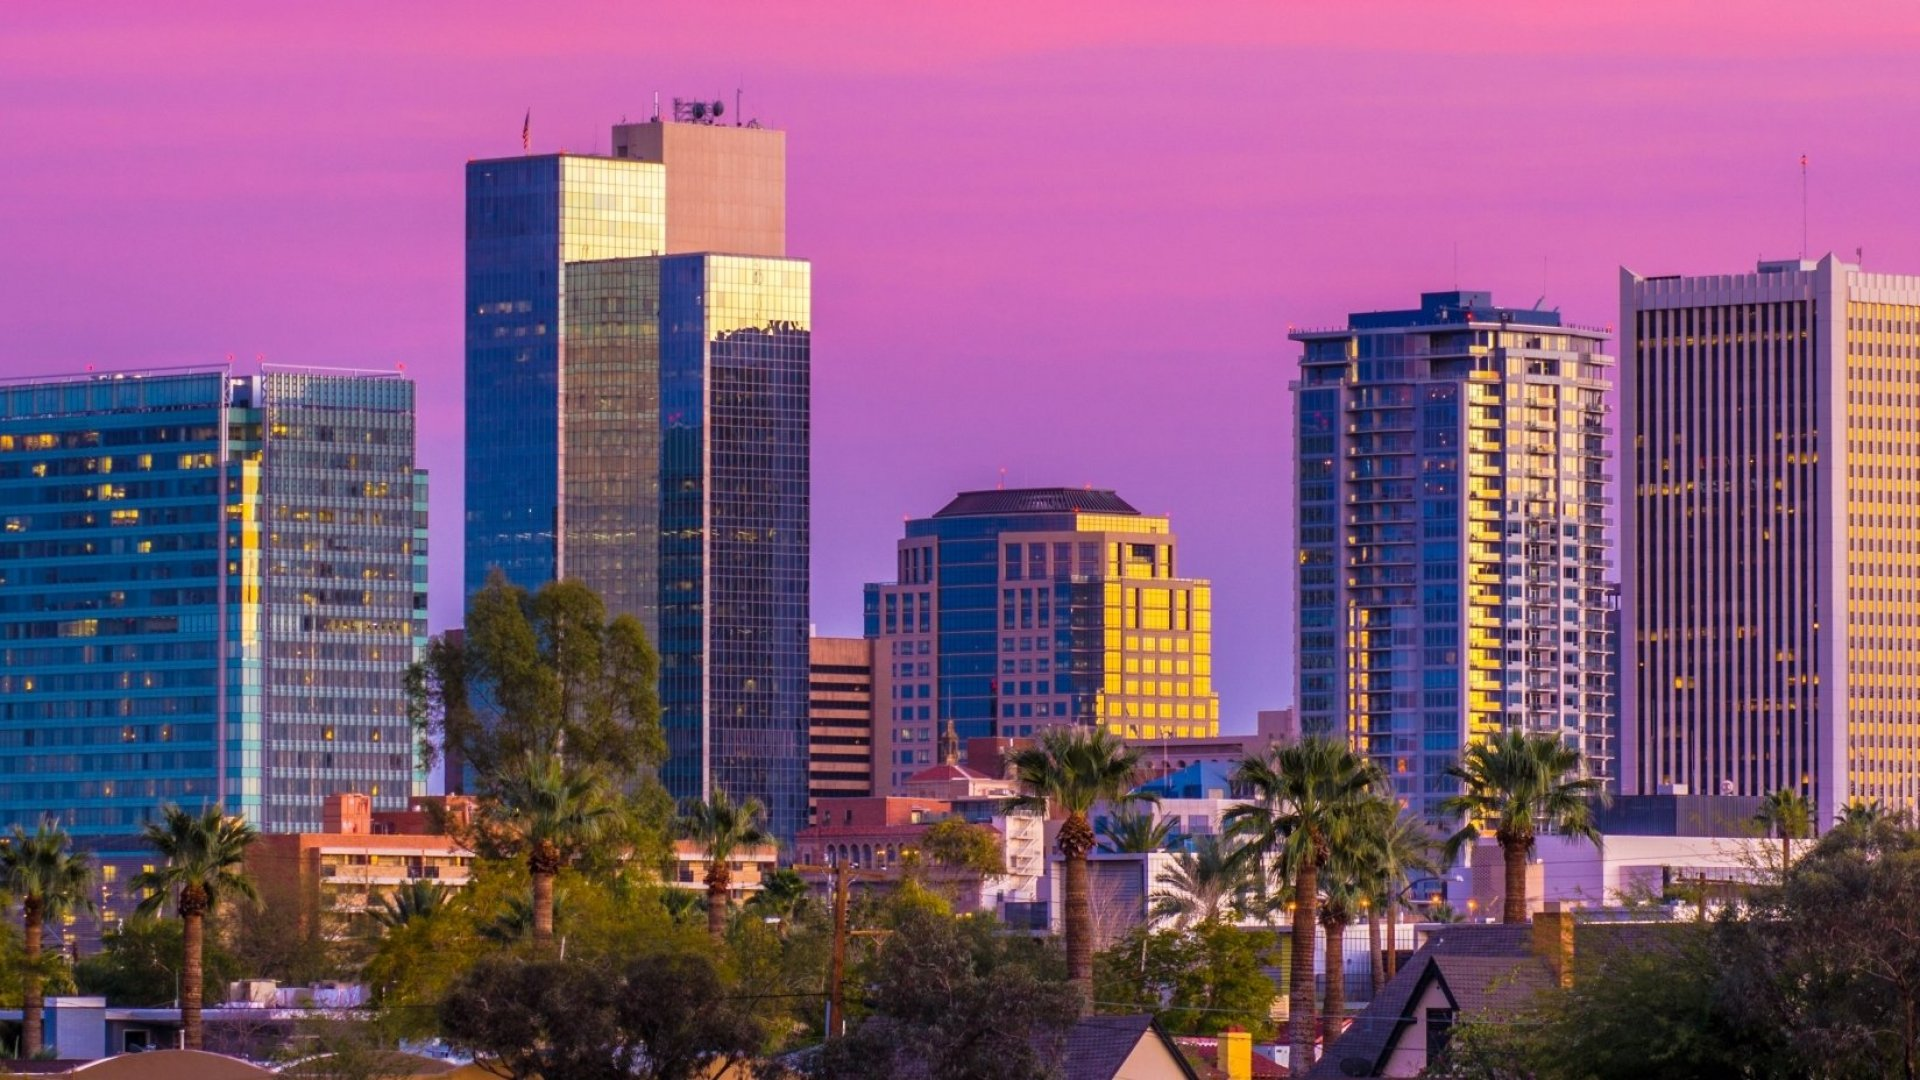 13 Major U.S. Cities Where You Can Live Well on Less Than $50,000 a Year